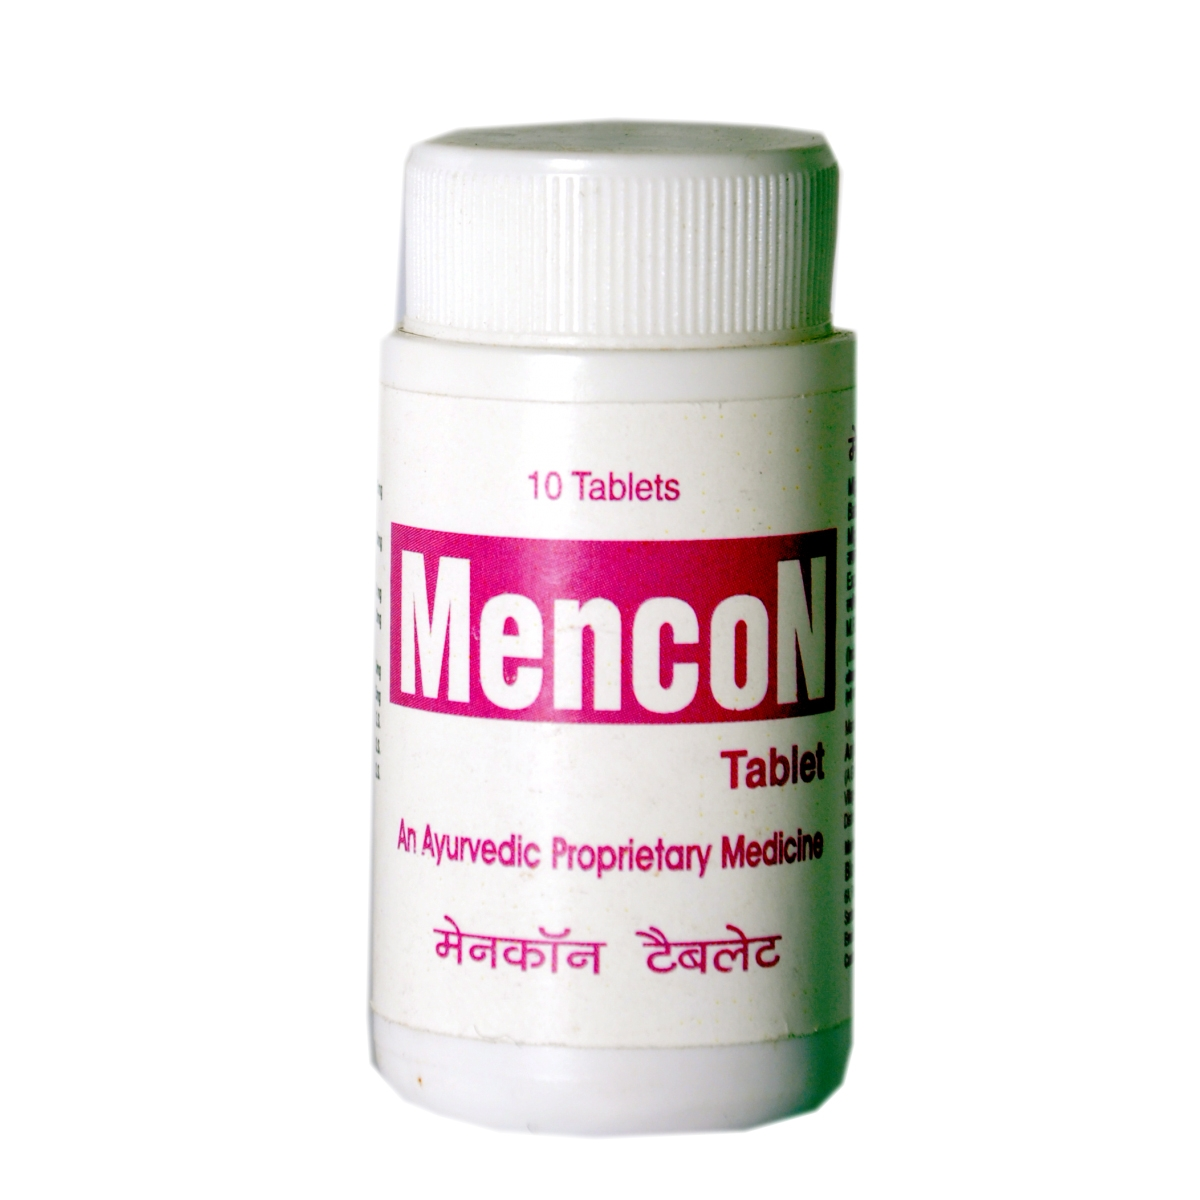 Mencon Tablet In Vadodara